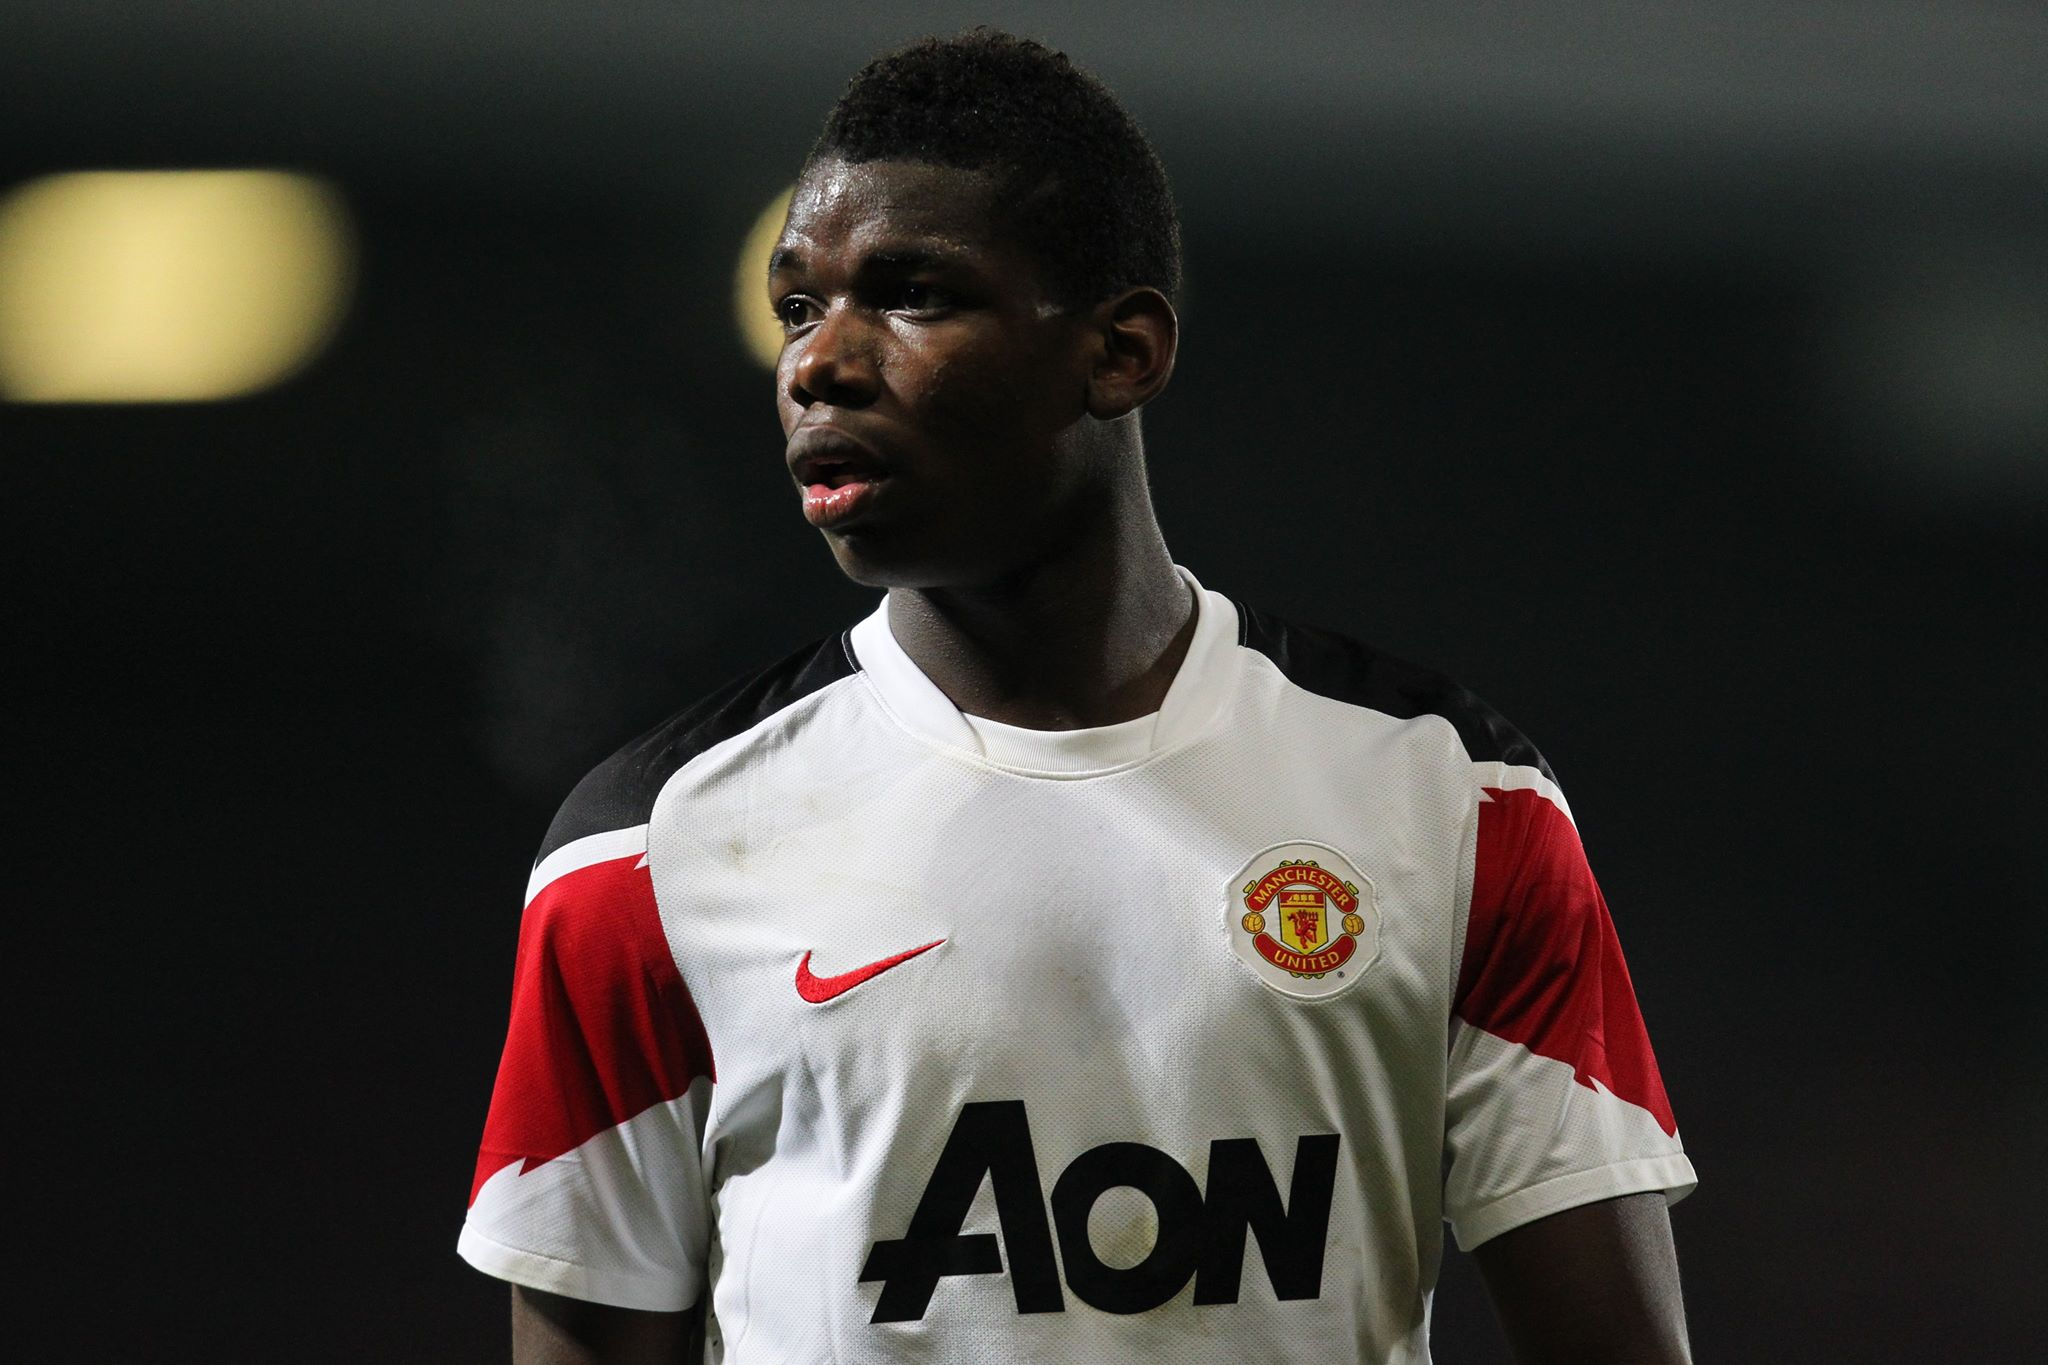 Pogba returned to United and signed his first deal there. Image: PA Images